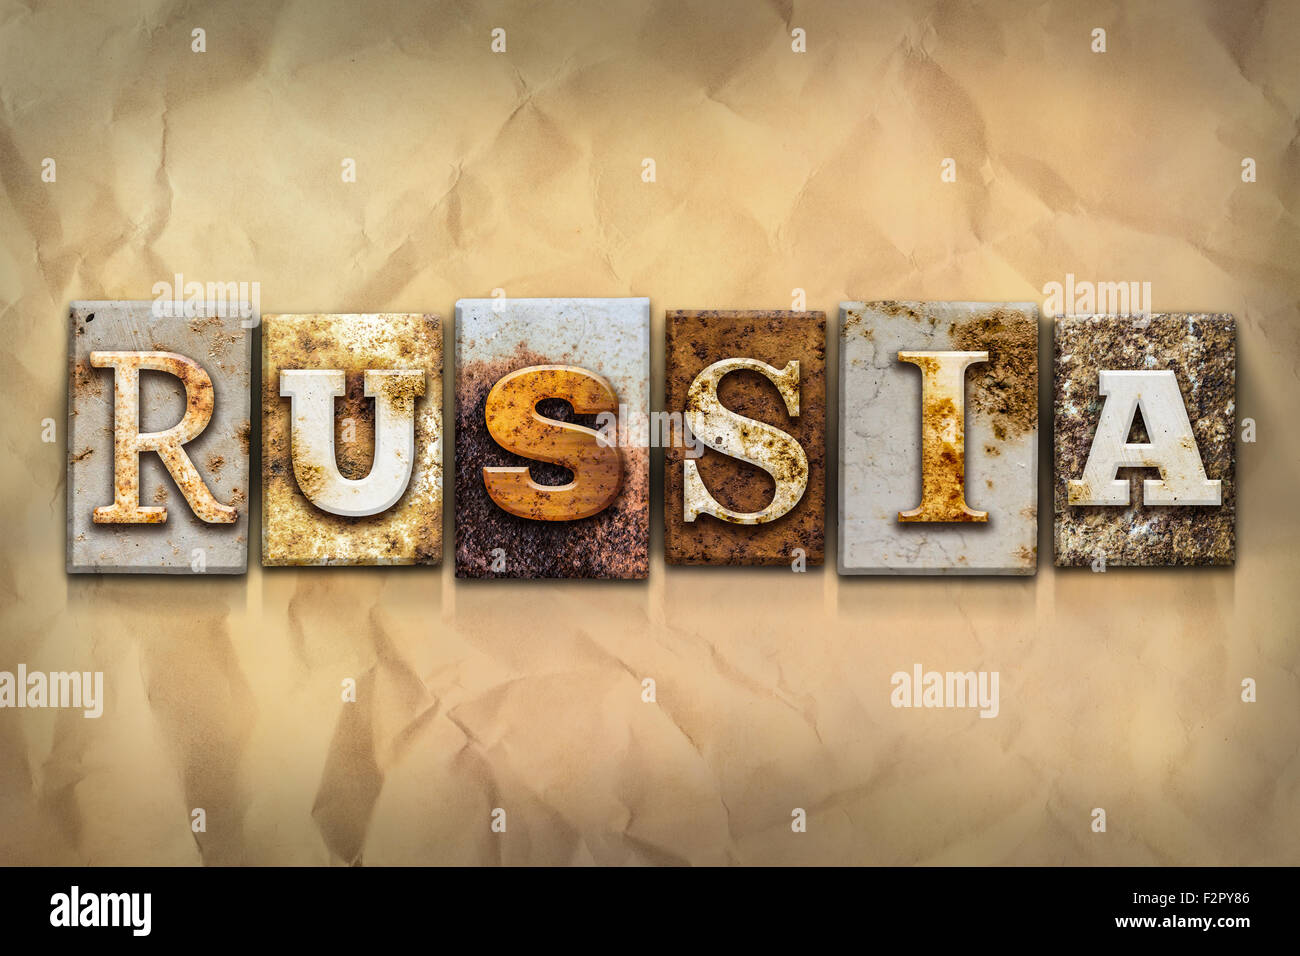 the word russia written in rusty metal letterpress type on a crumbled aged paper